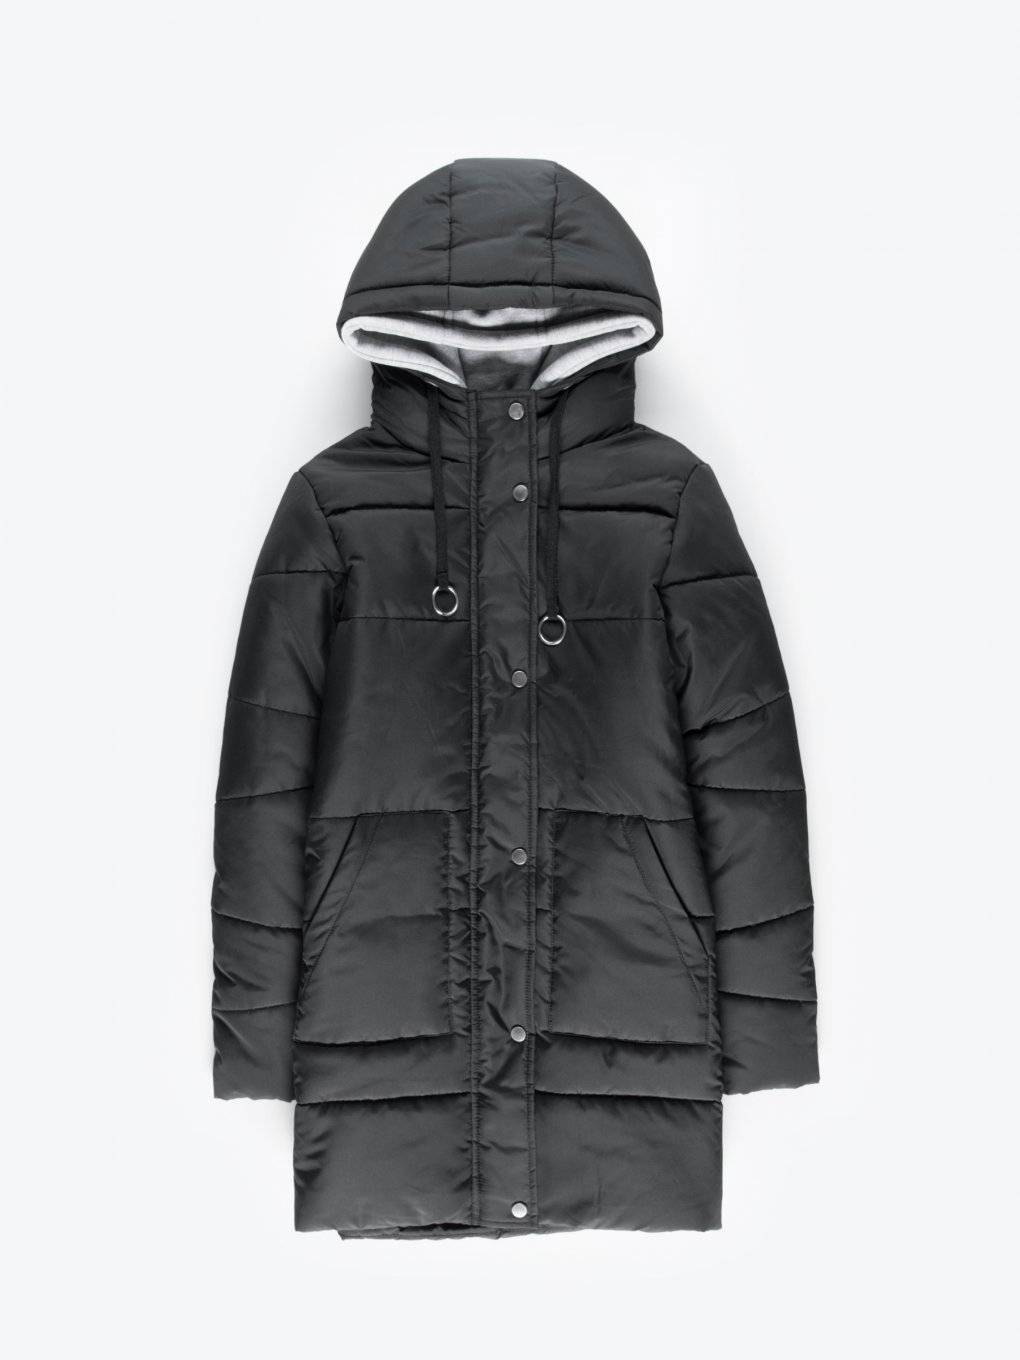 Longline combined jacket with removable inner part